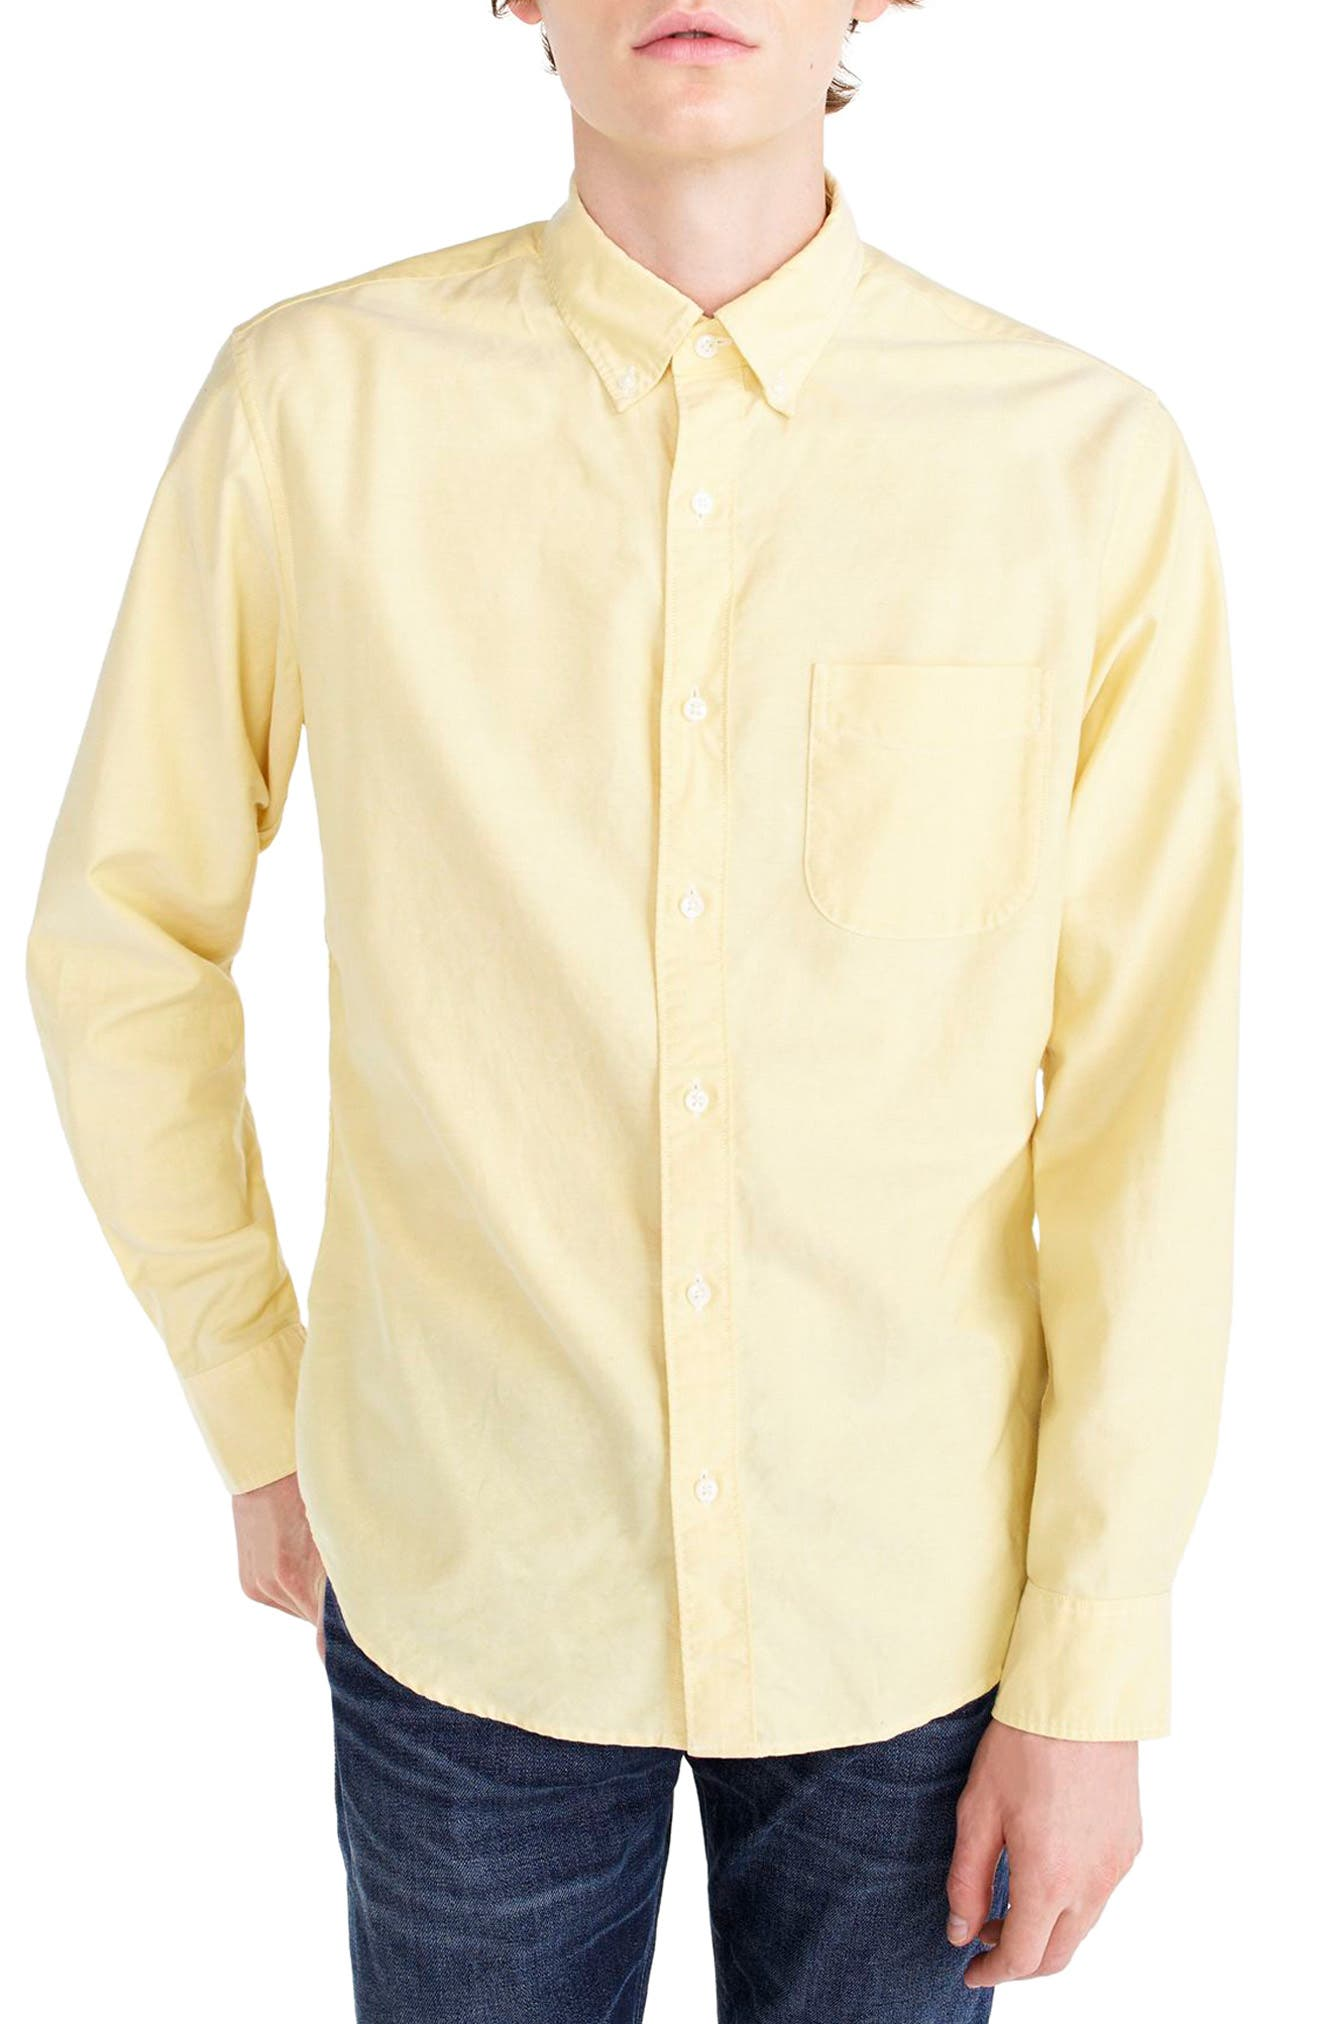 J.Crew Classic Fit Stretch Pima Cotton Oxford Shirt